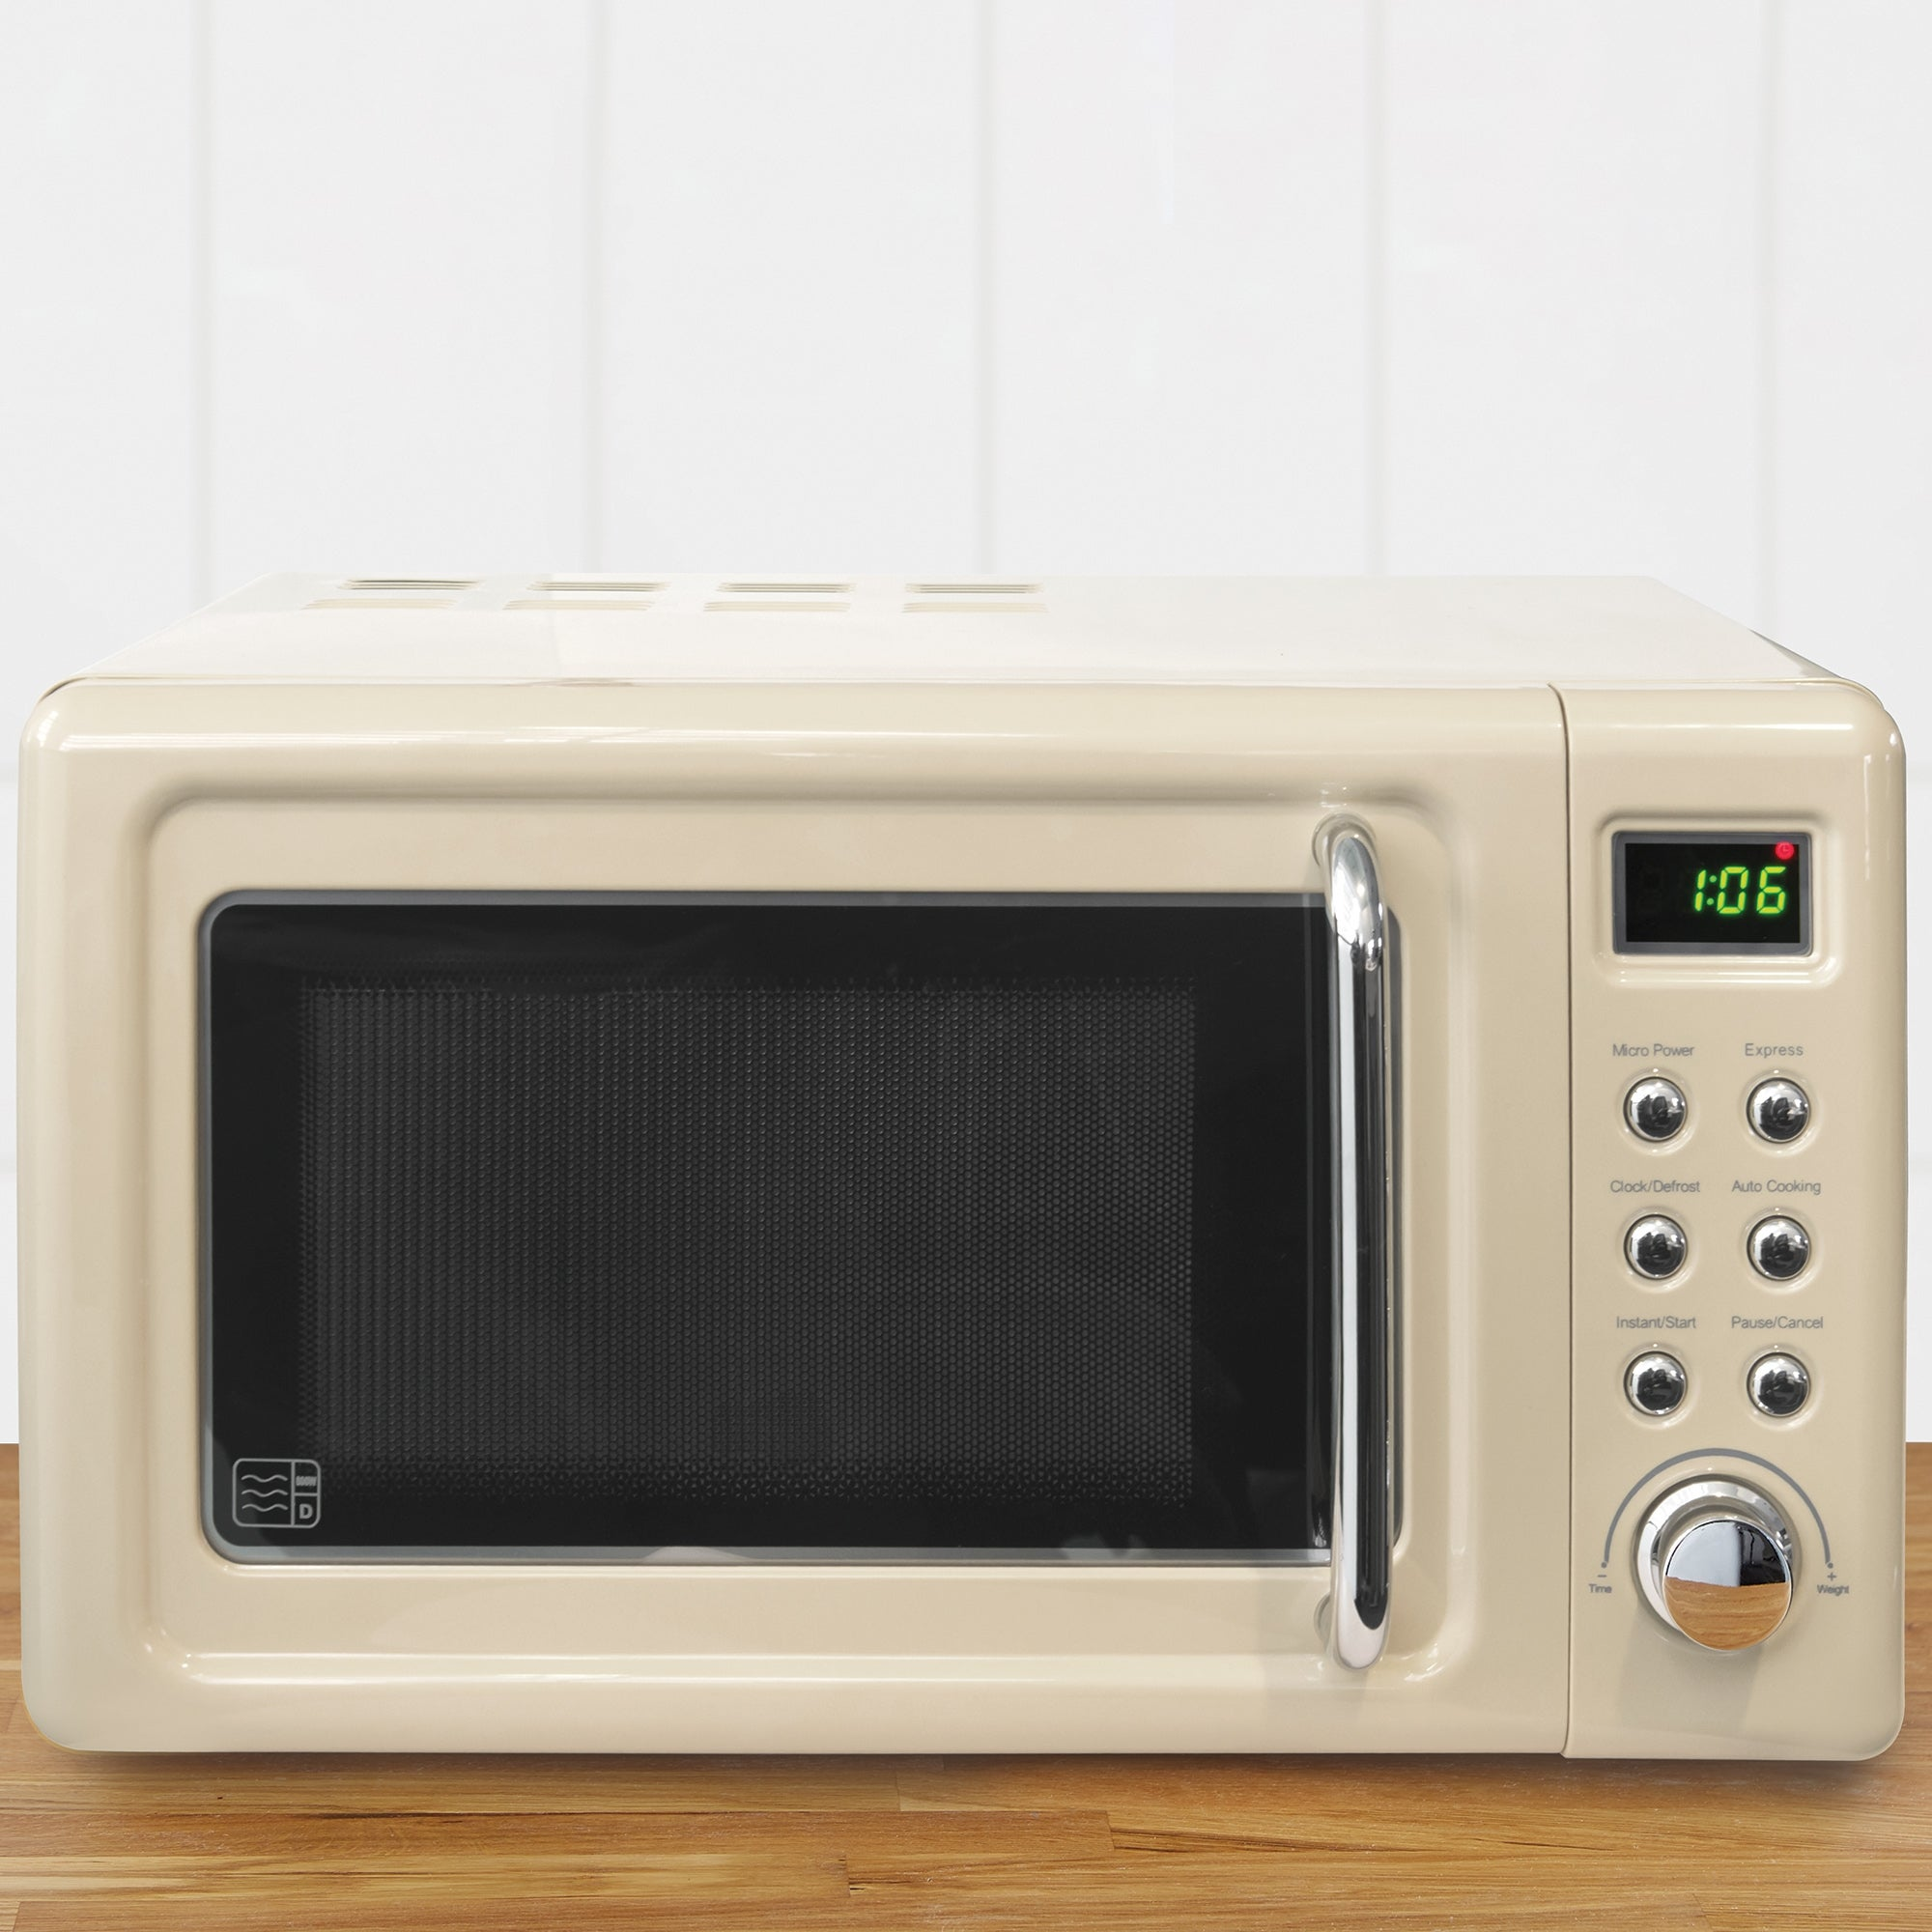 Retro 20l 800w Microwave Cream Cream